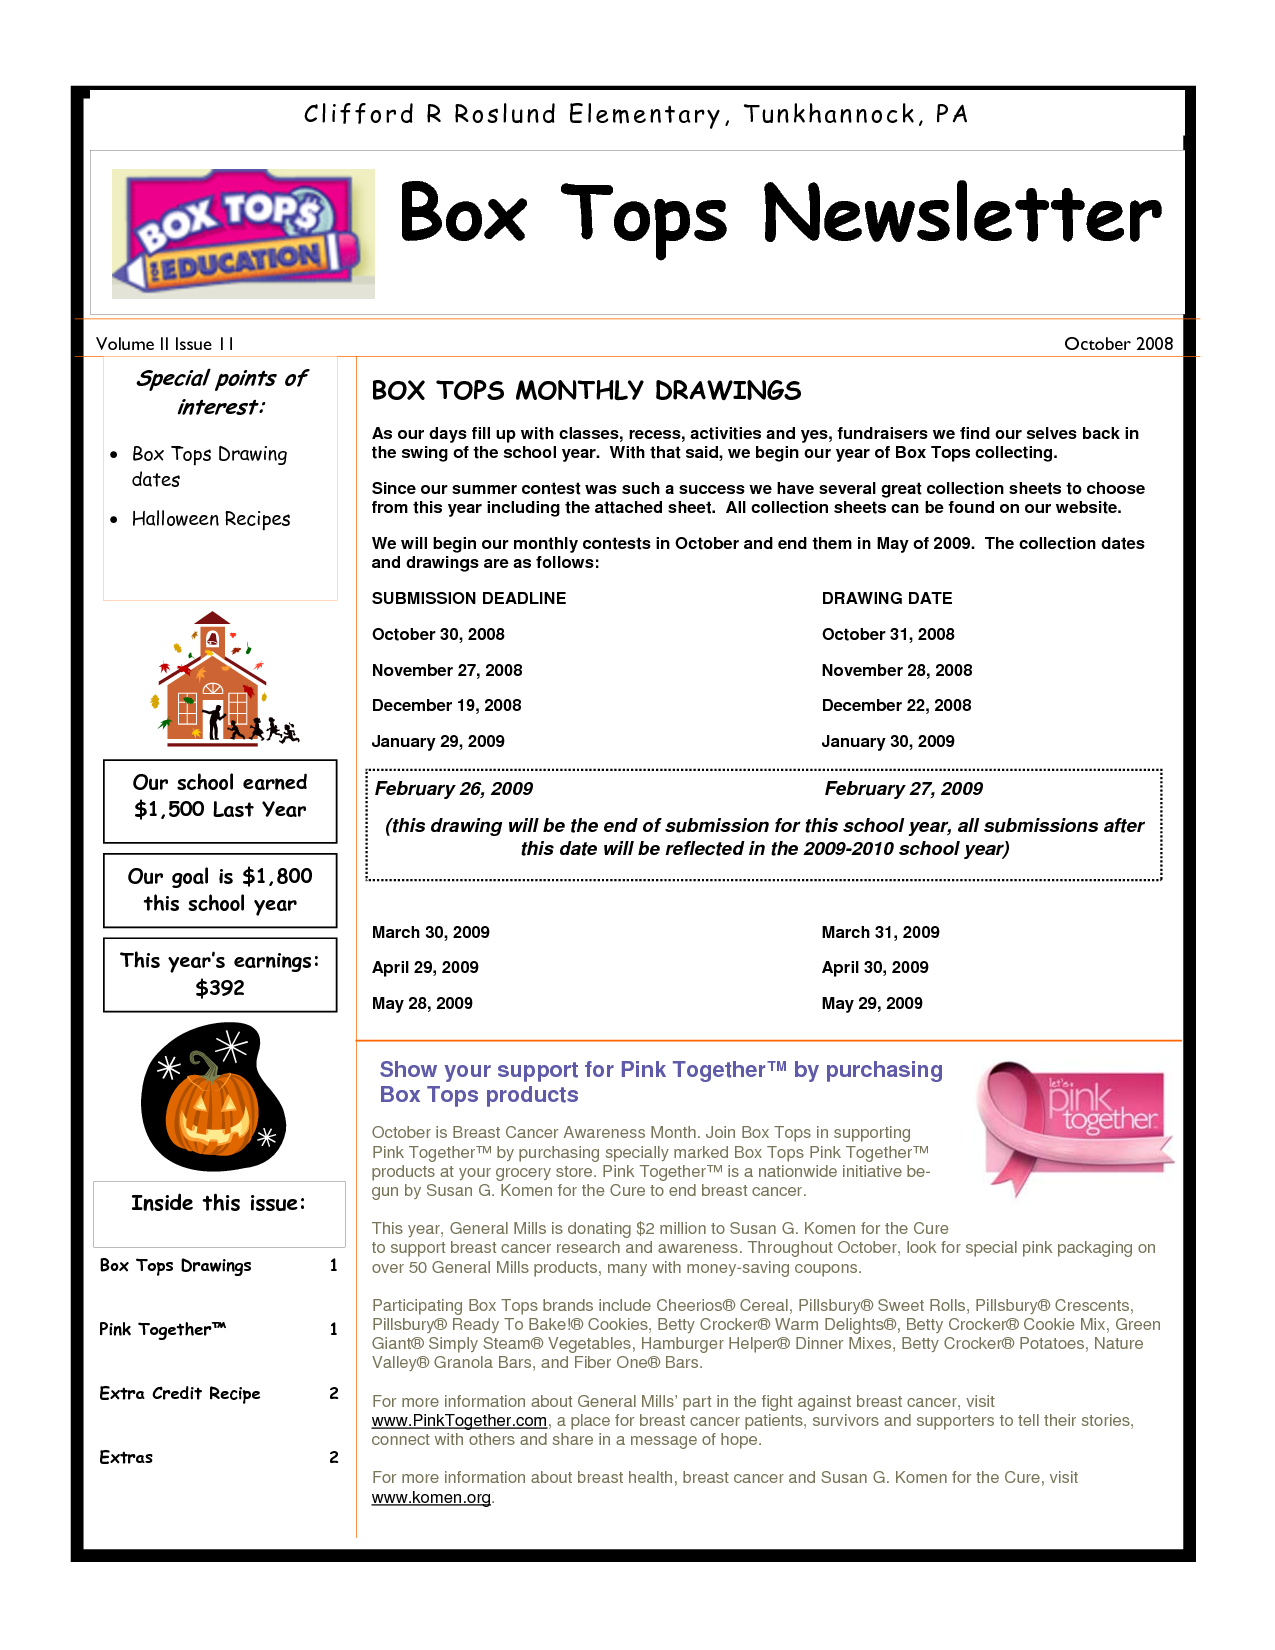 scope of work template | Box tops for education ideas | Pinterest ...